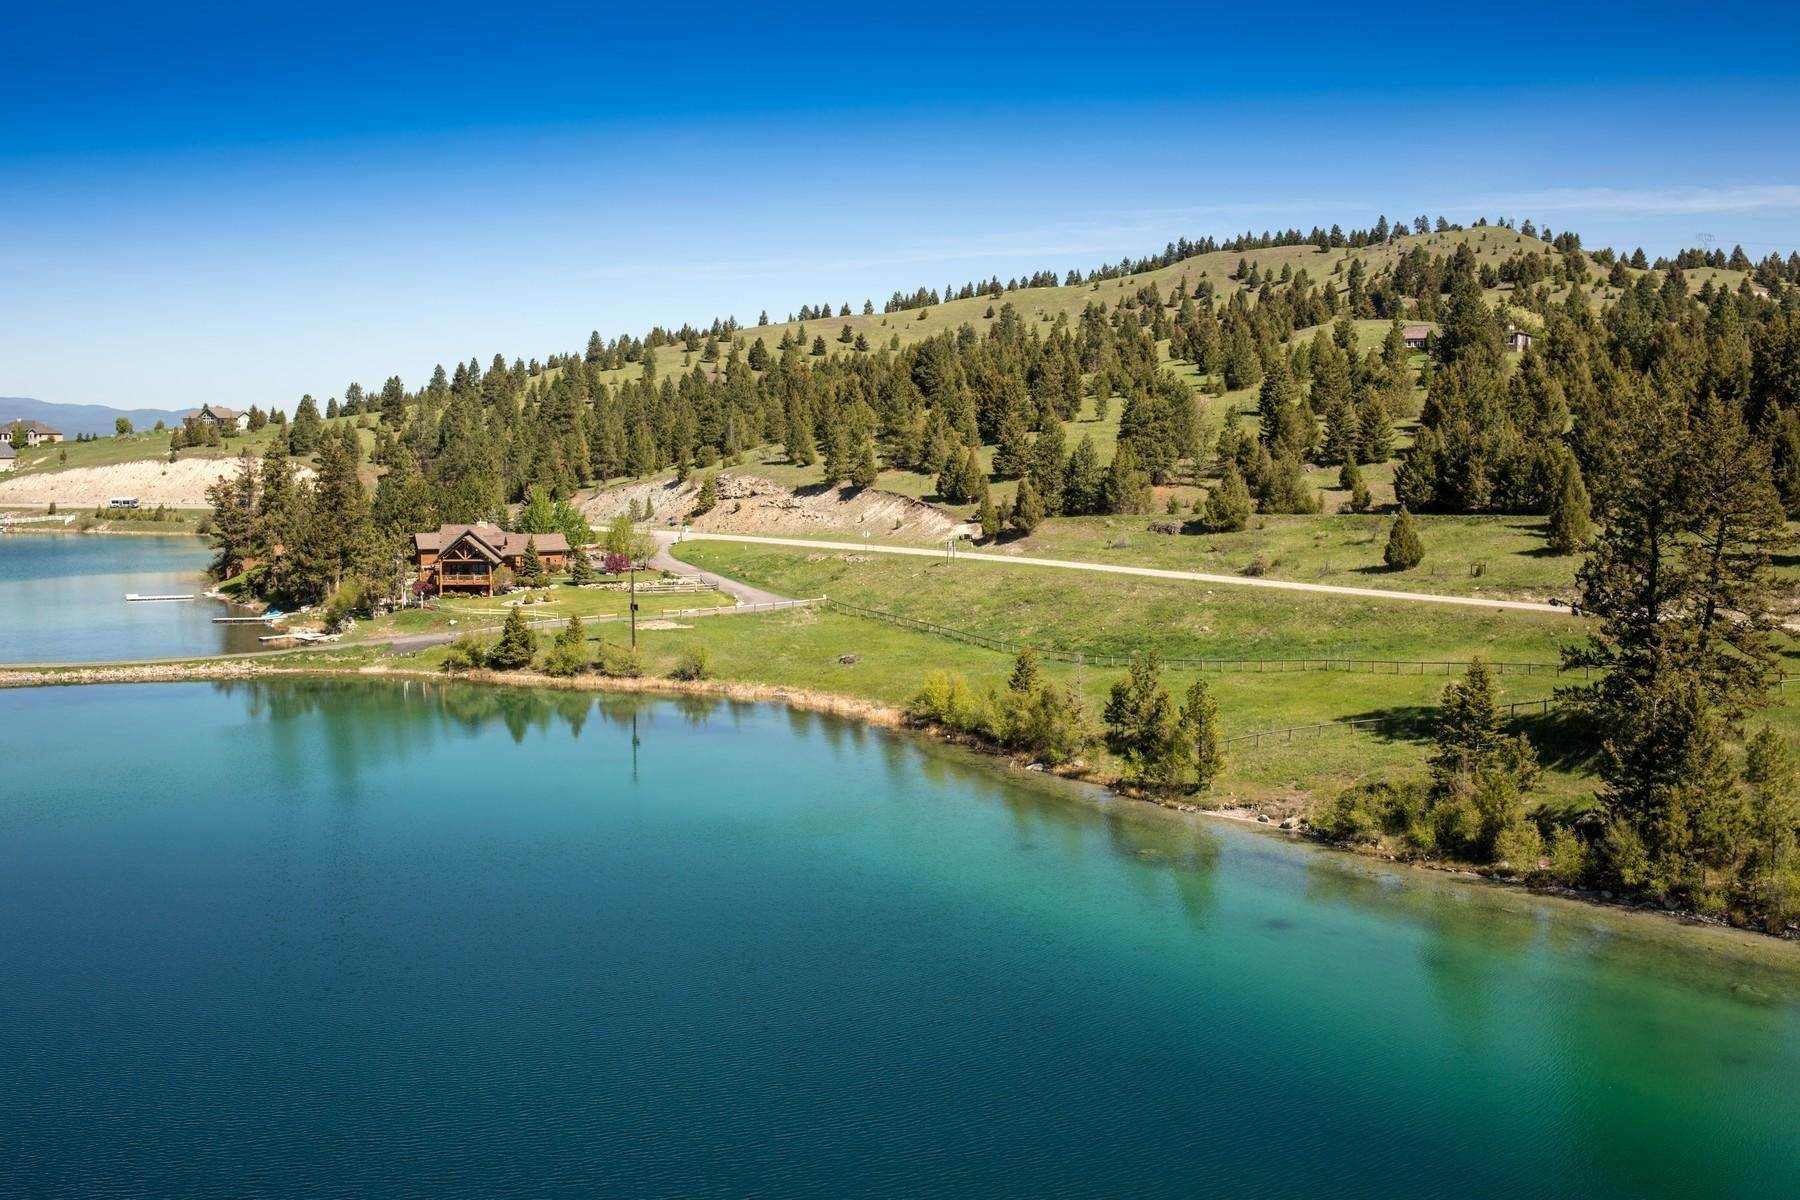 Property for Sale at Foys Lake Island 54 Treasure Island Way Kalispell, Montana 59901 United States